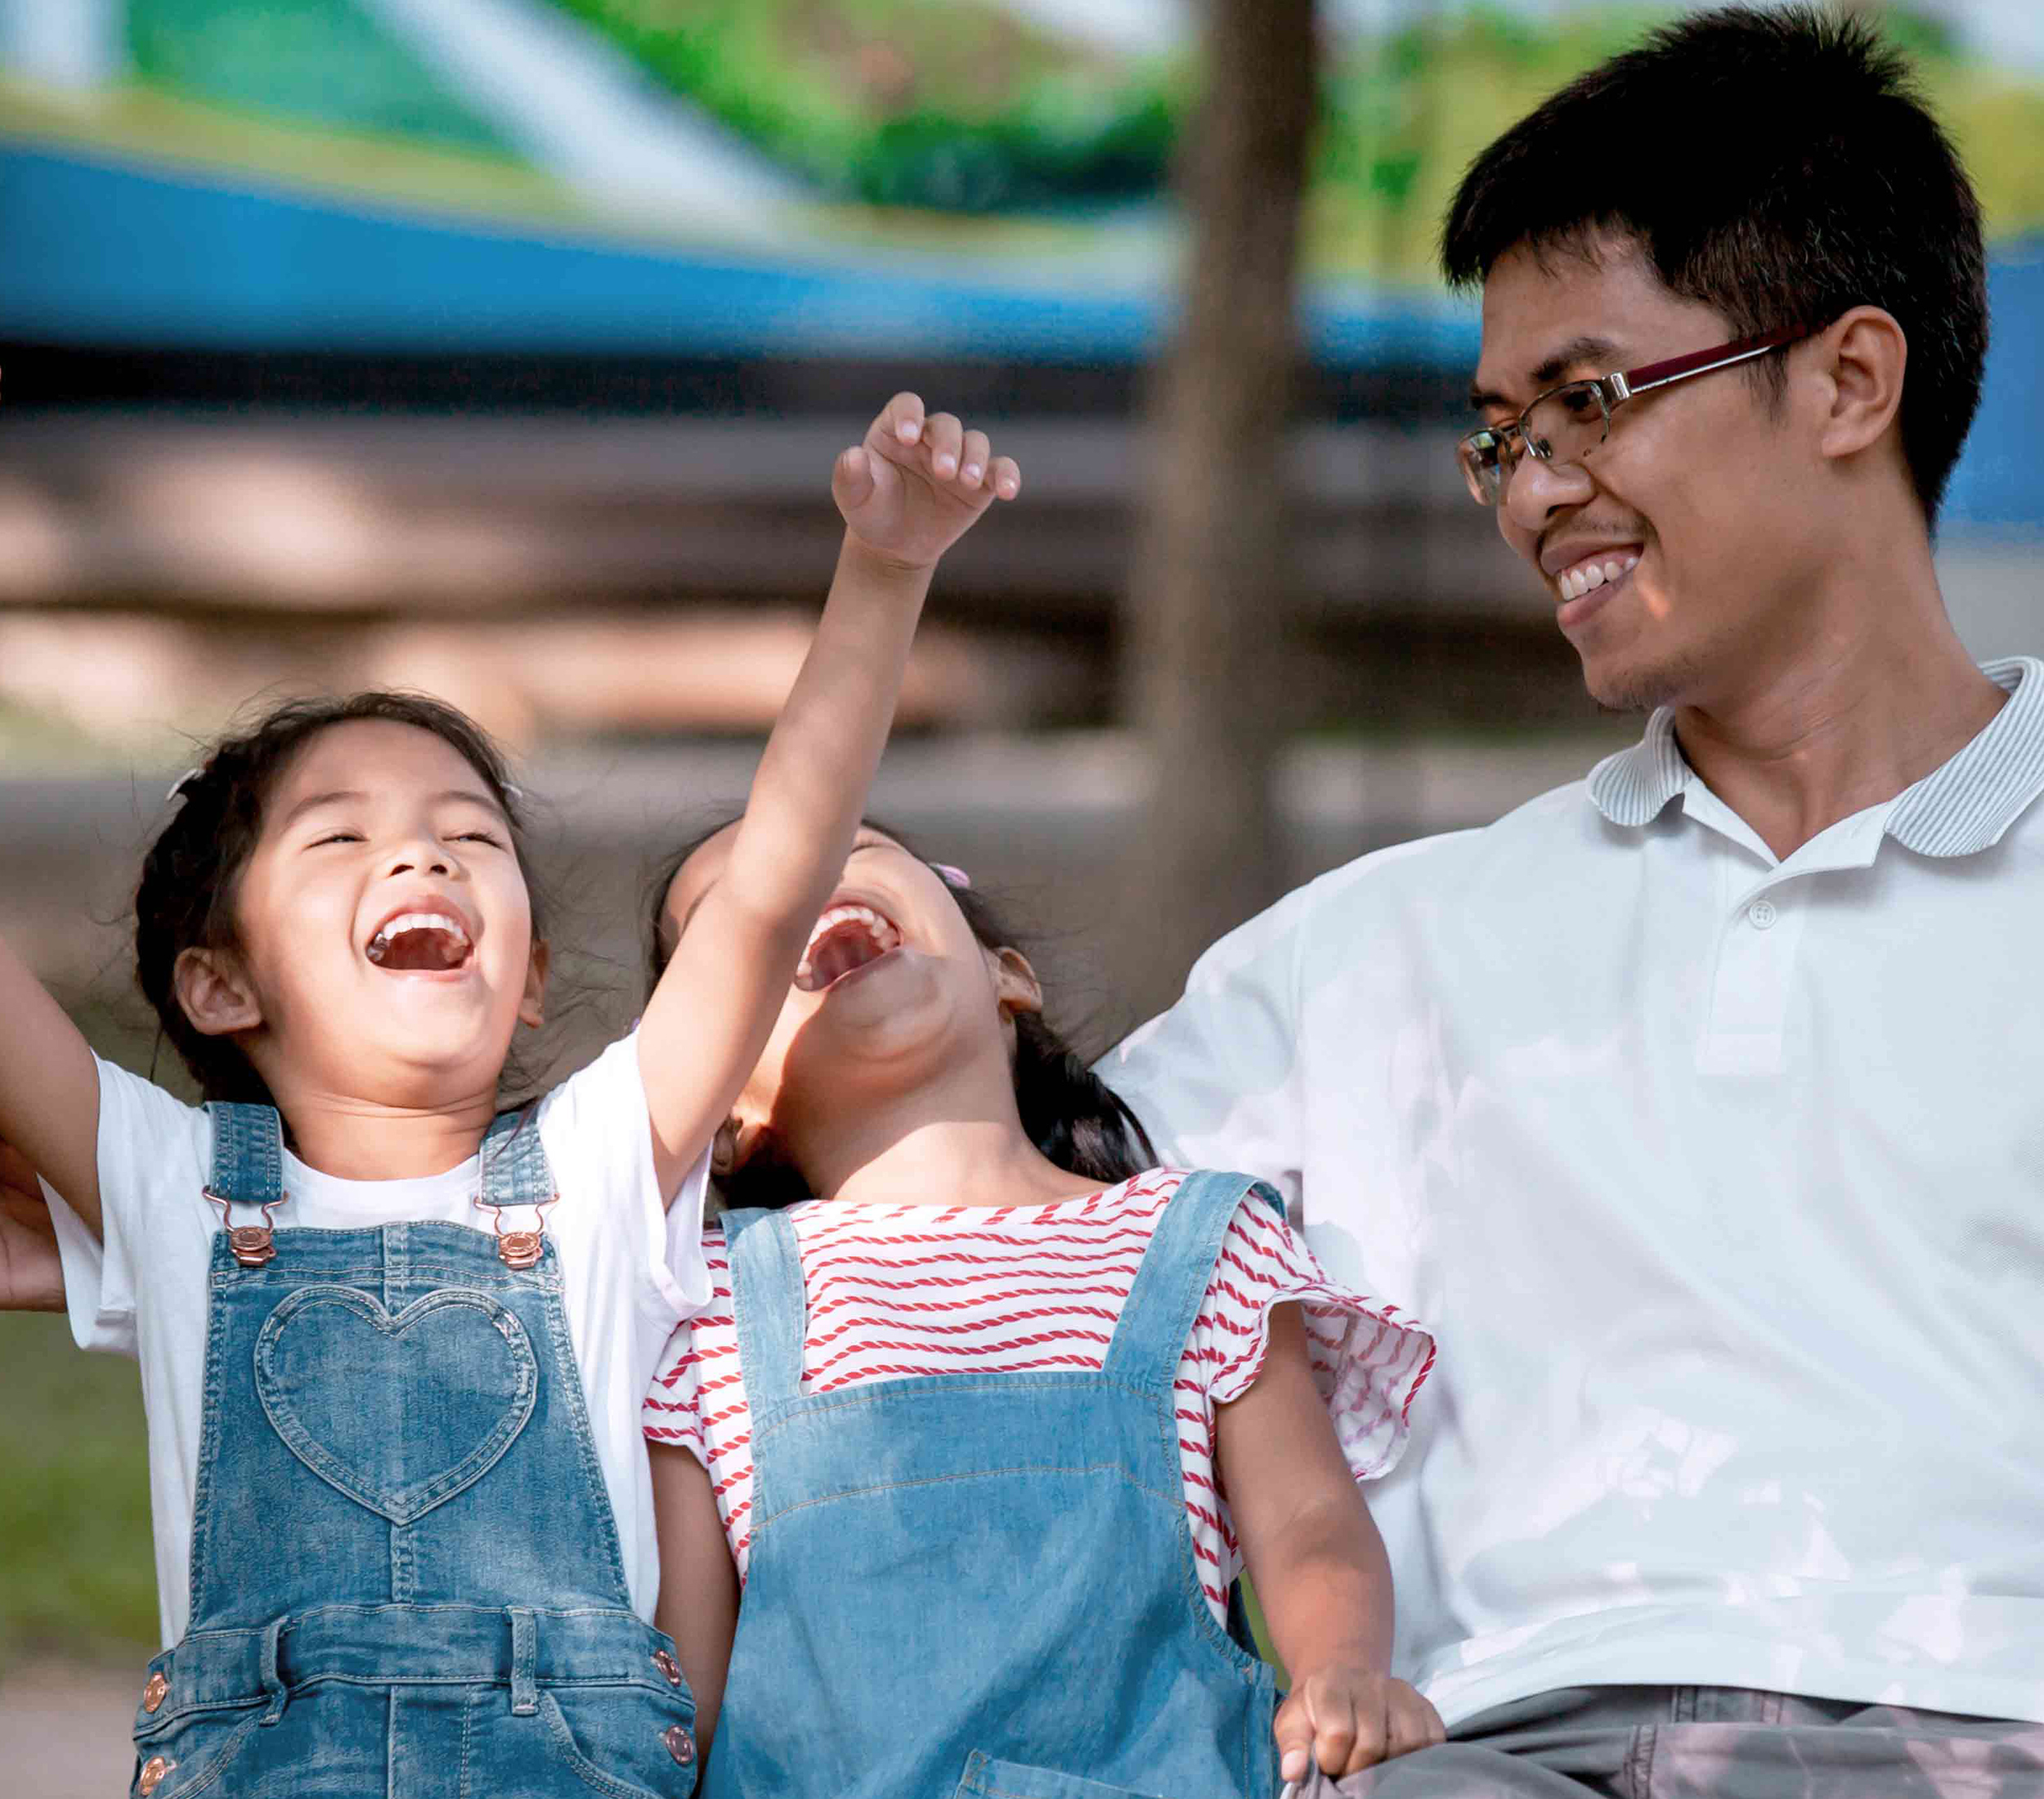 Man and his two daughters laughing and cheering on a bench